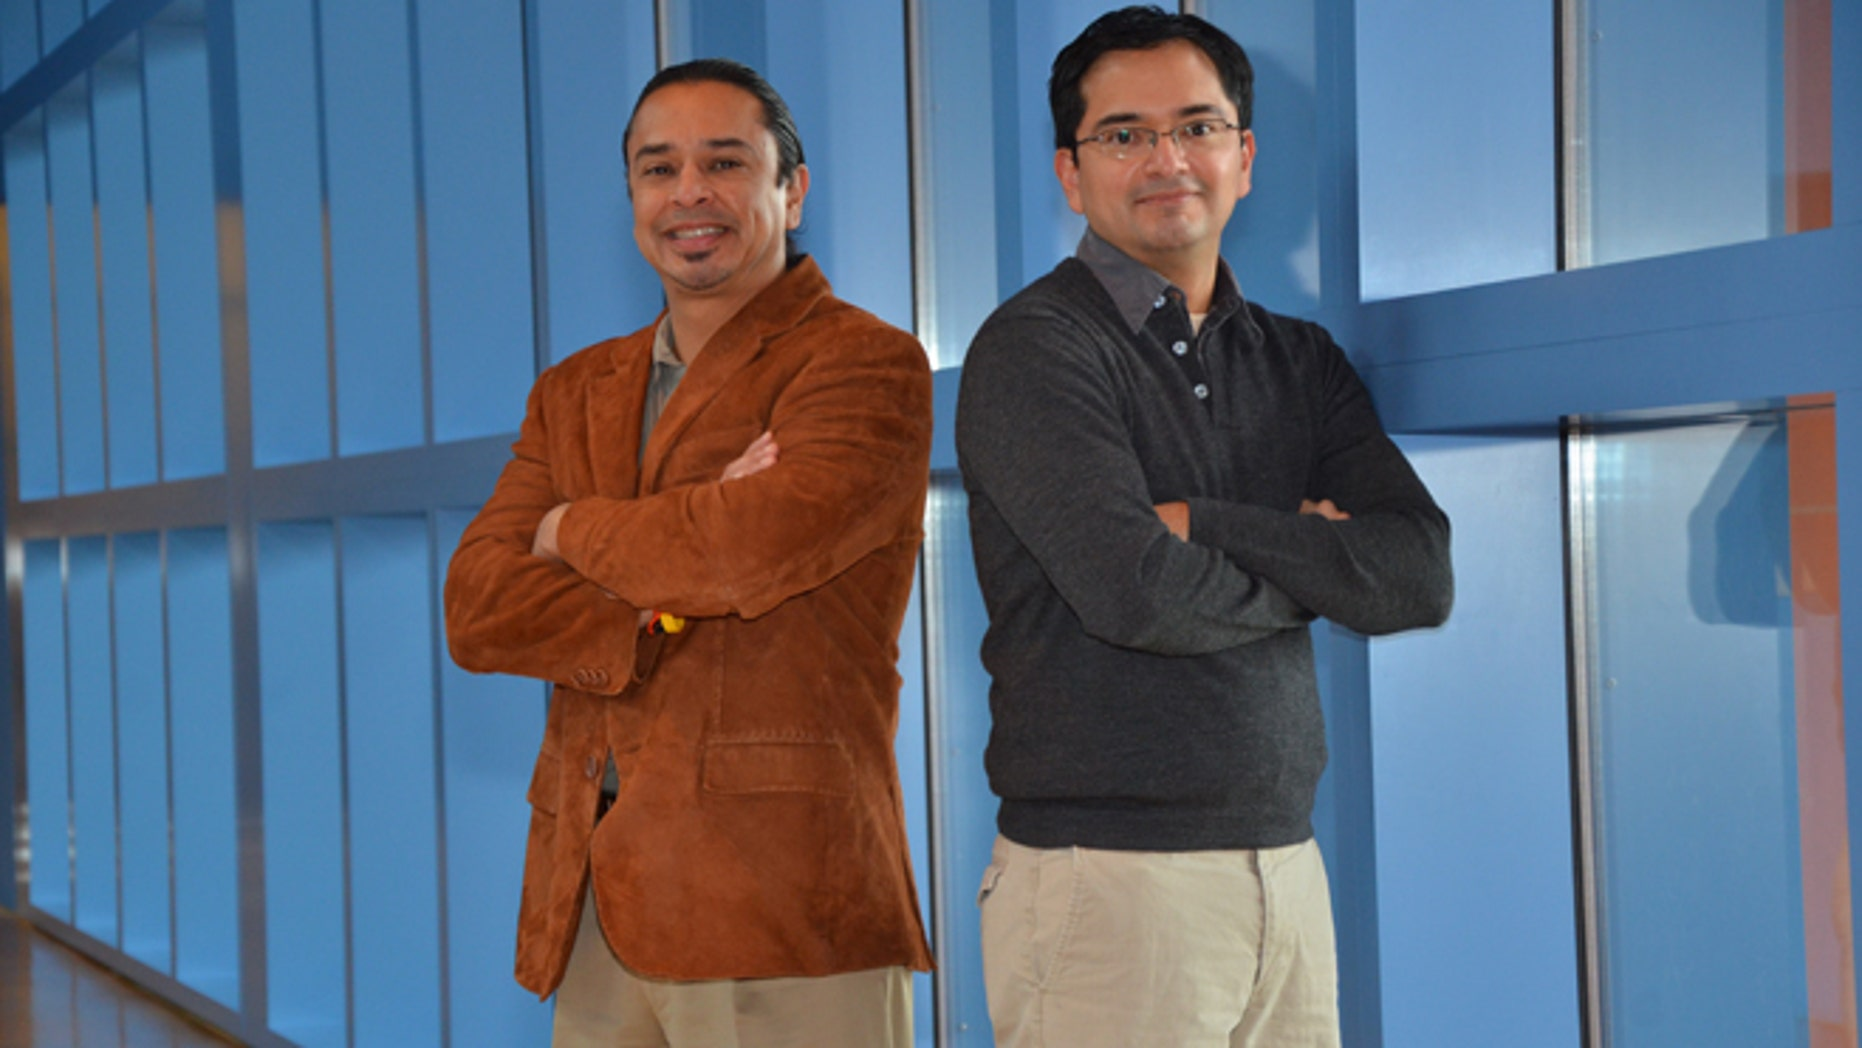 In mid 2011, Jesse and Edwardo Martínez founded the Latino Startup Alliance and LSA was launched New Year's Day 2012.